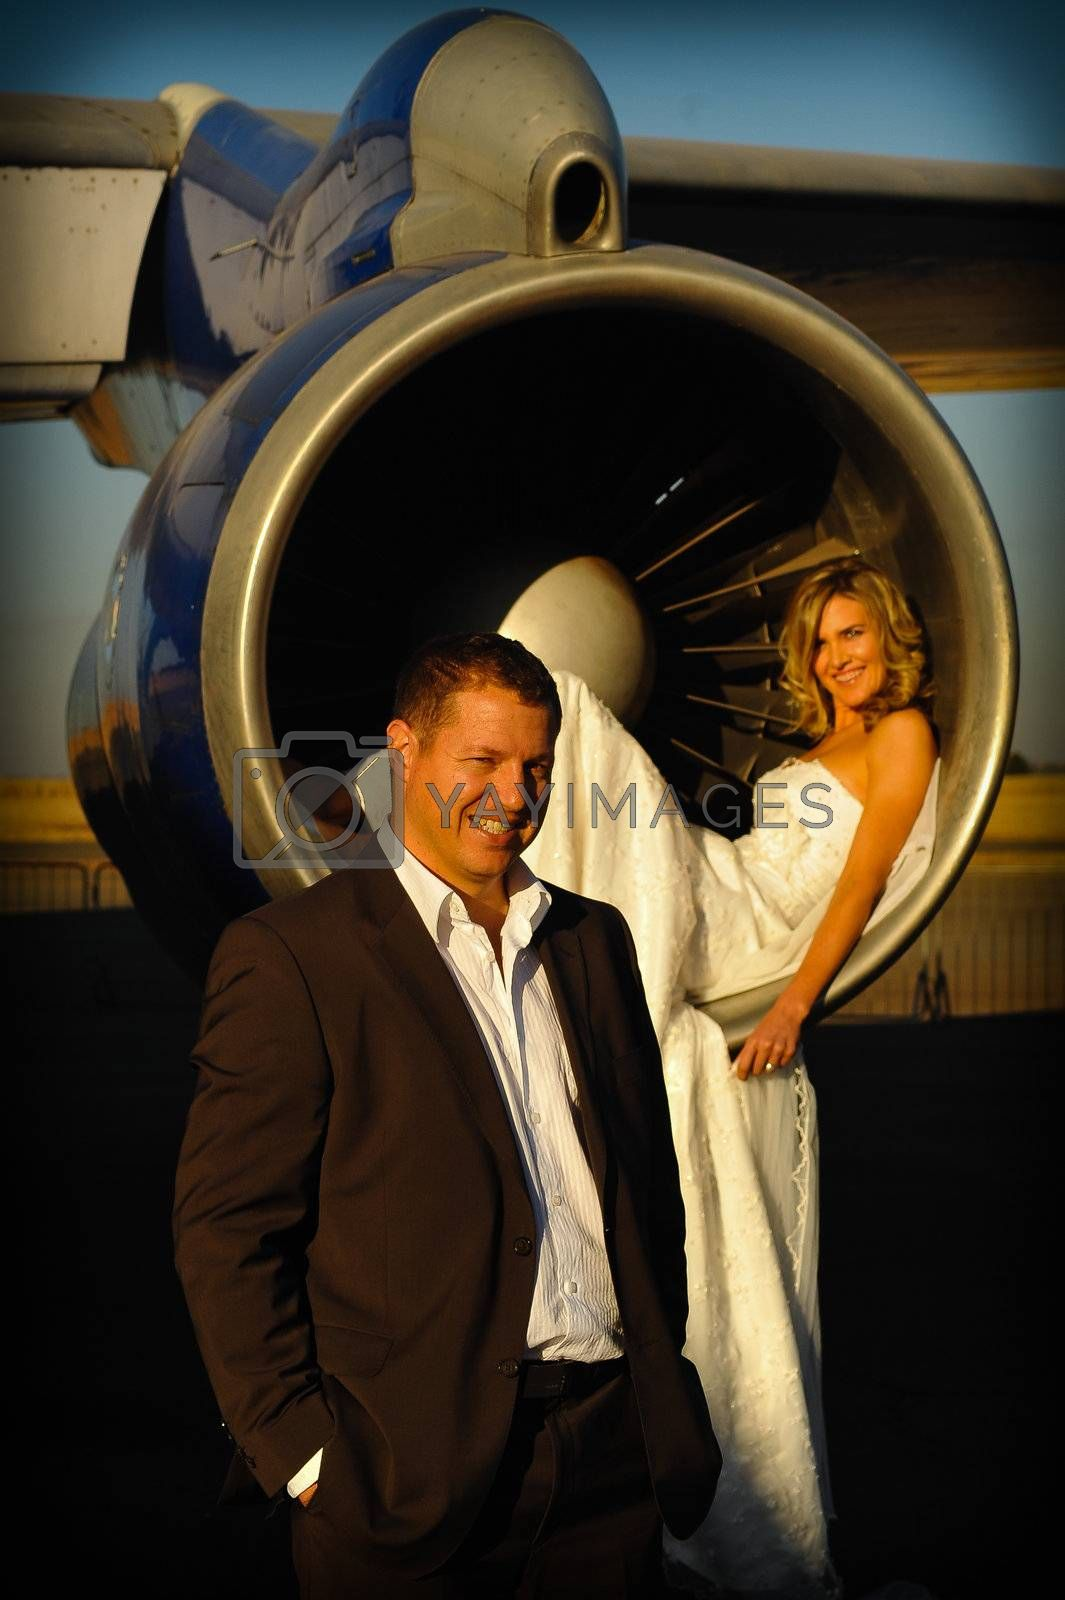 sexy young adult wedding couple laying inside the engine intake of Boeing passenger aircraft with groom infront